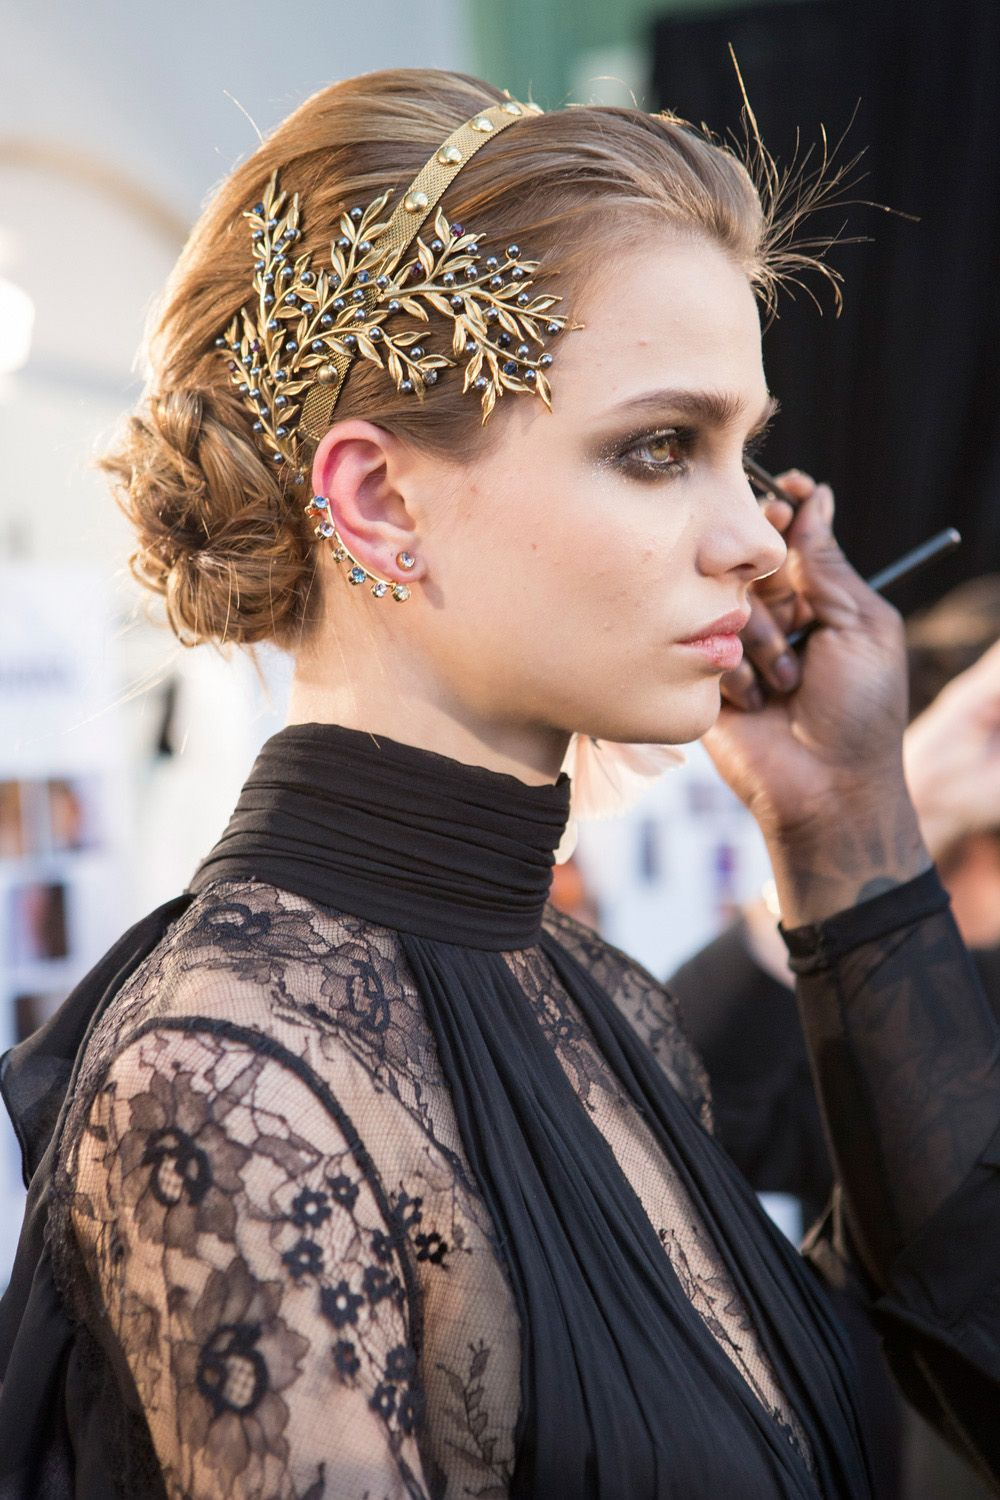 ornate-how-to-style-hair-accessories-headbands-hairstyles-ways-to-wear-gold-bun-runway-fall-winter.jpg